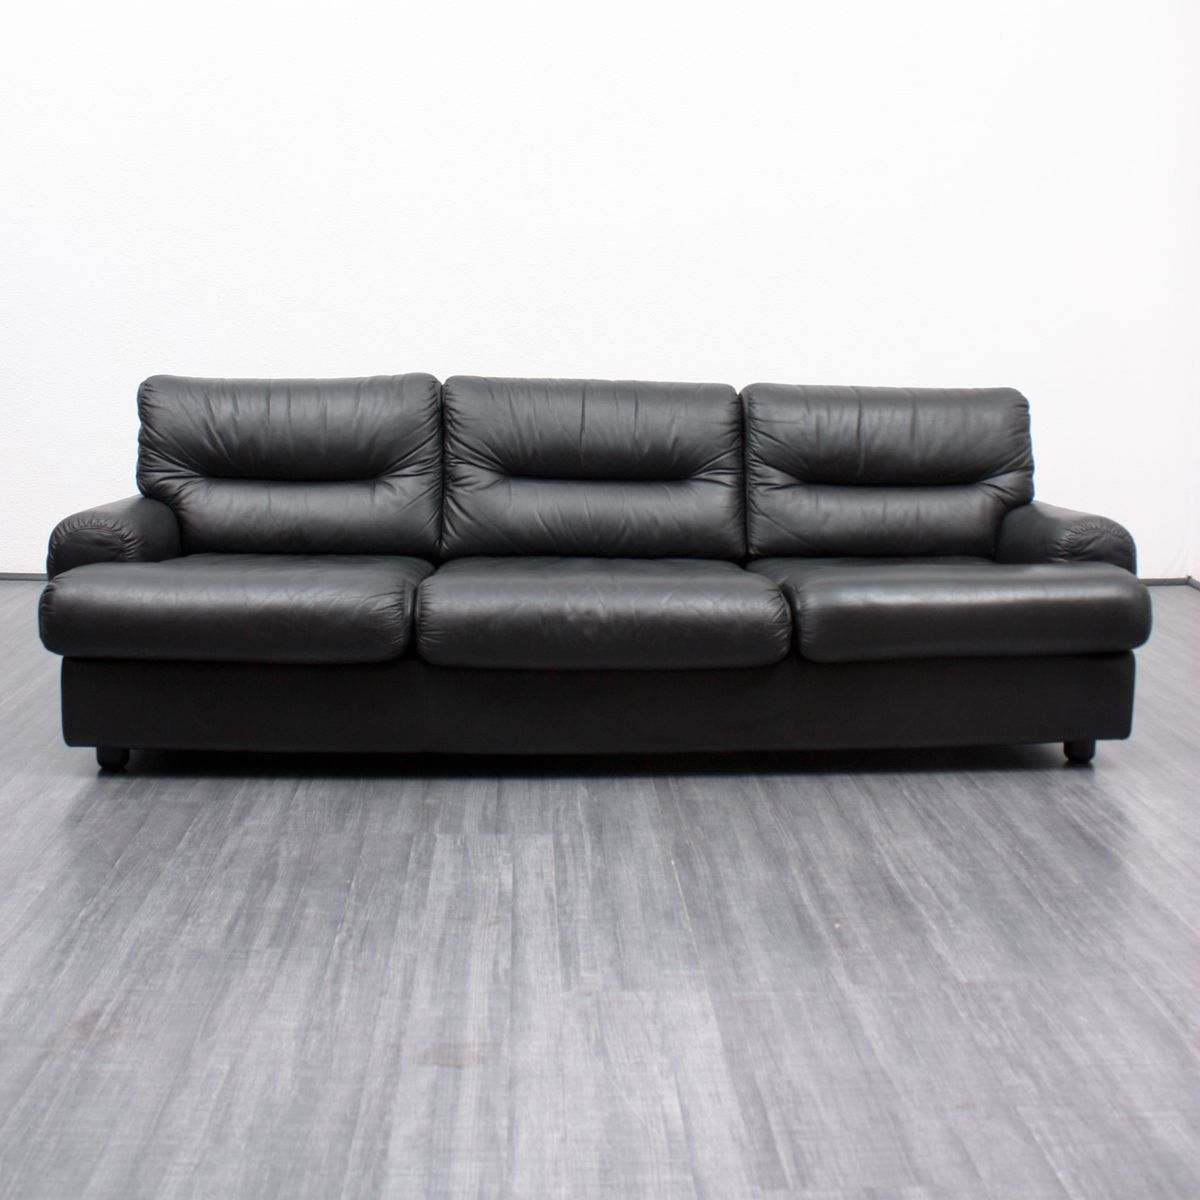 Vintage Black Leather Lounge Sofa 1970s For Sale At Pamono